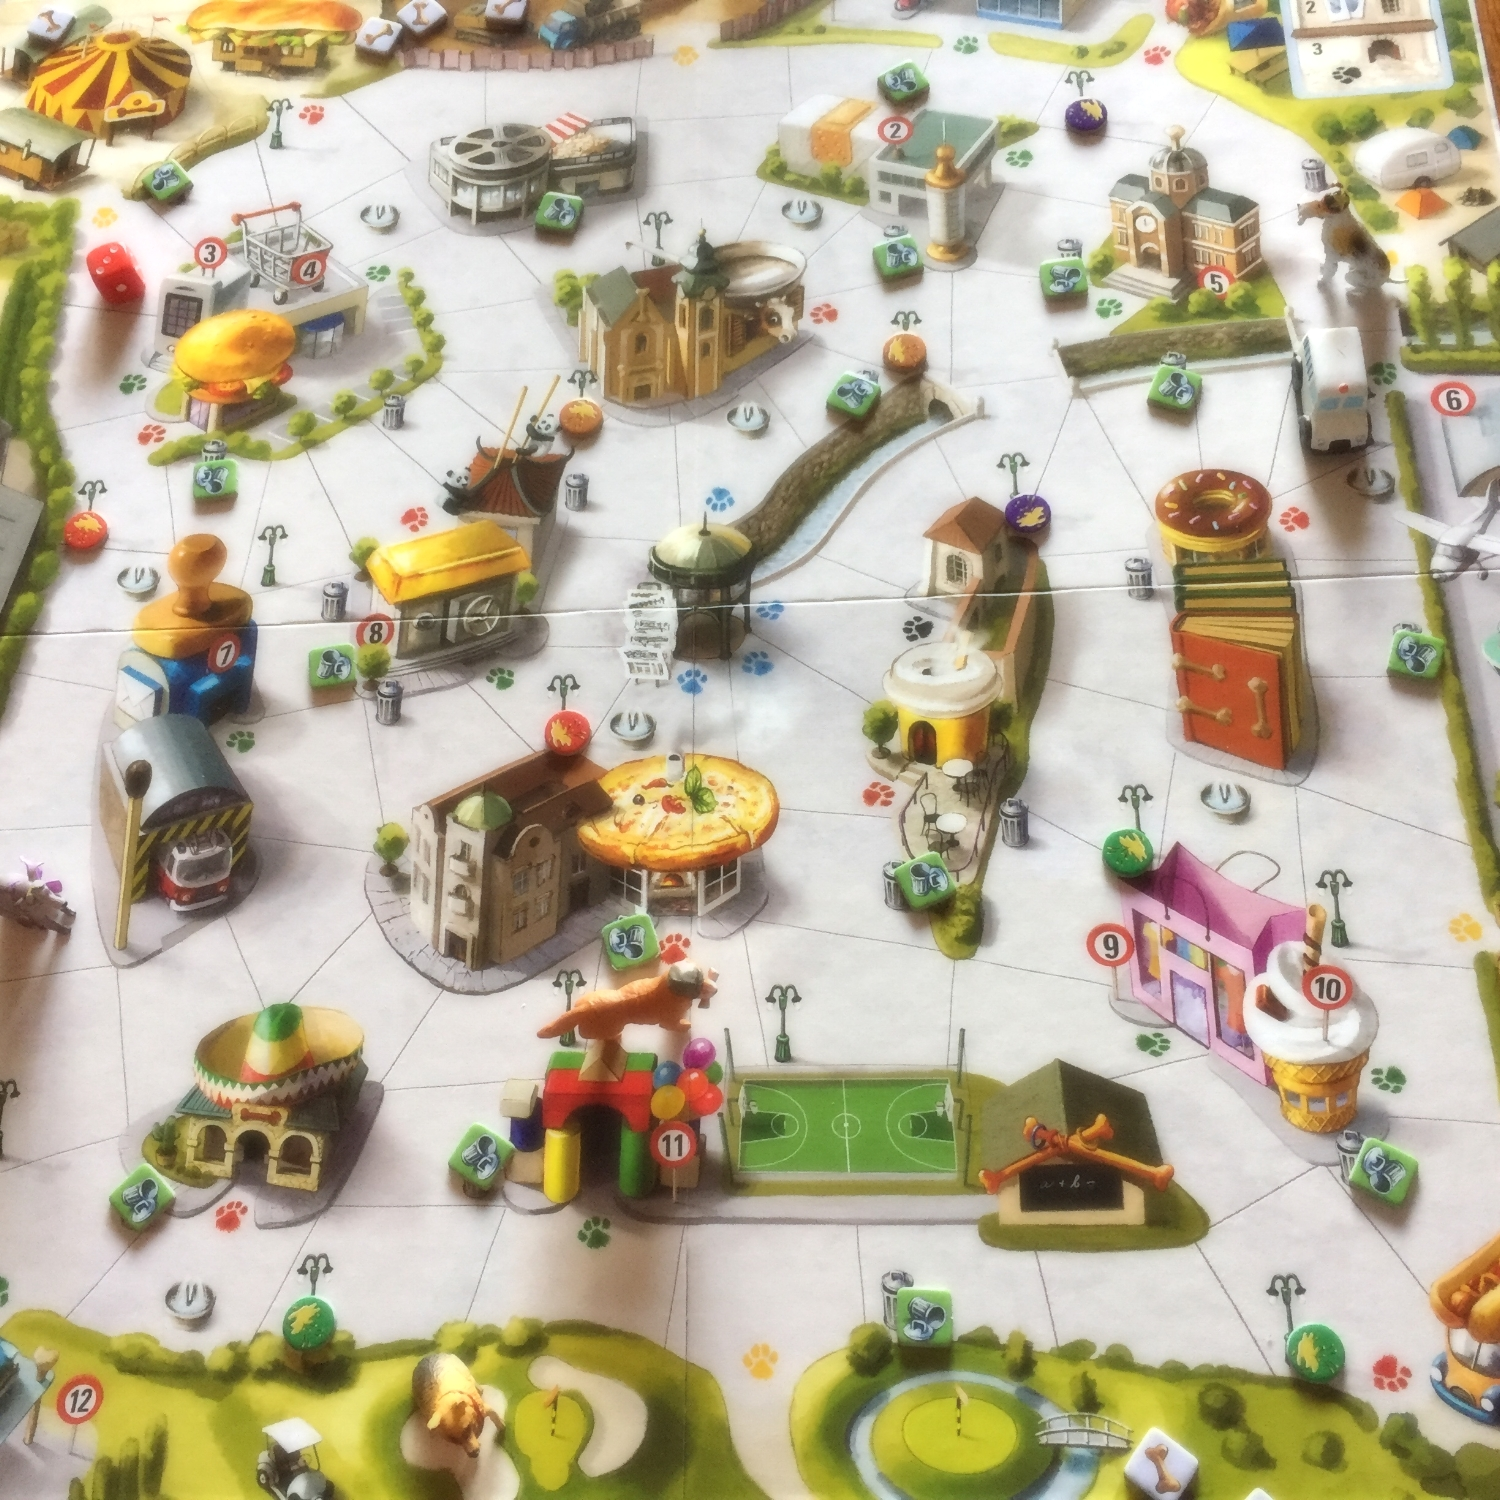 Can someone please turn this game board into an amusement park?